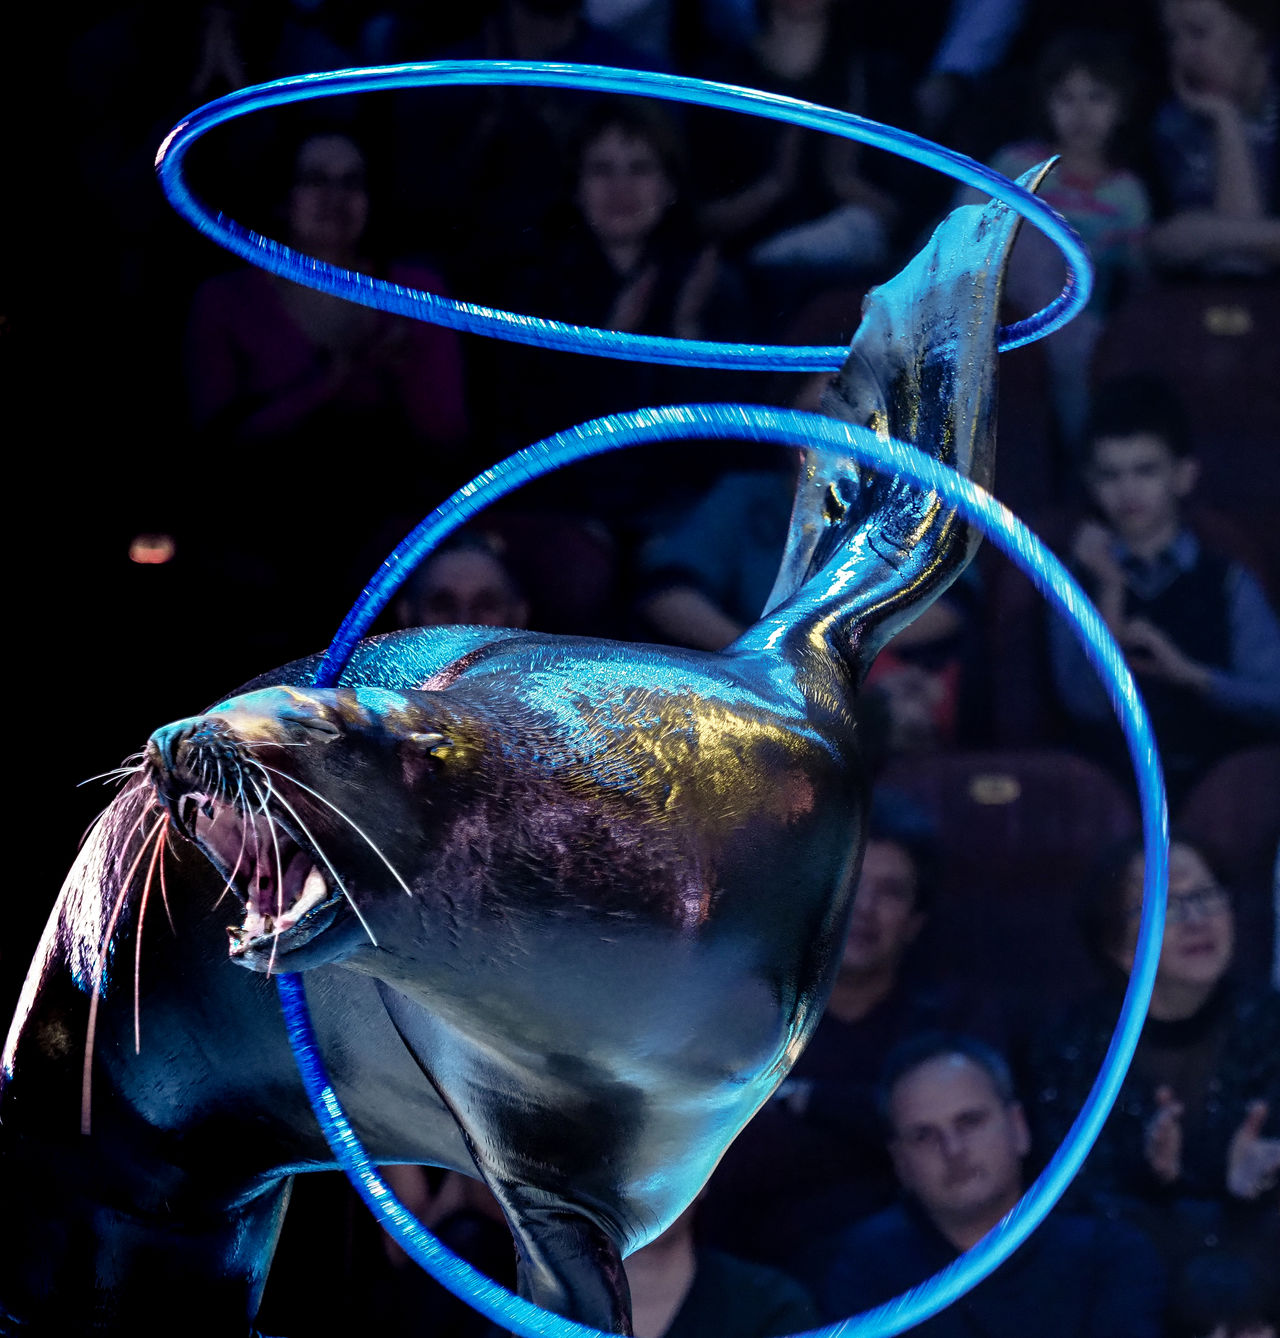 Russia, Moscow, Russian circus, circus, sea lion Animal Themes Black Background Blue Circus Close-up Day Fishbowl Fragility Mammal Moscow No People Pets Russia Russian Circus Sea Lion Swimming